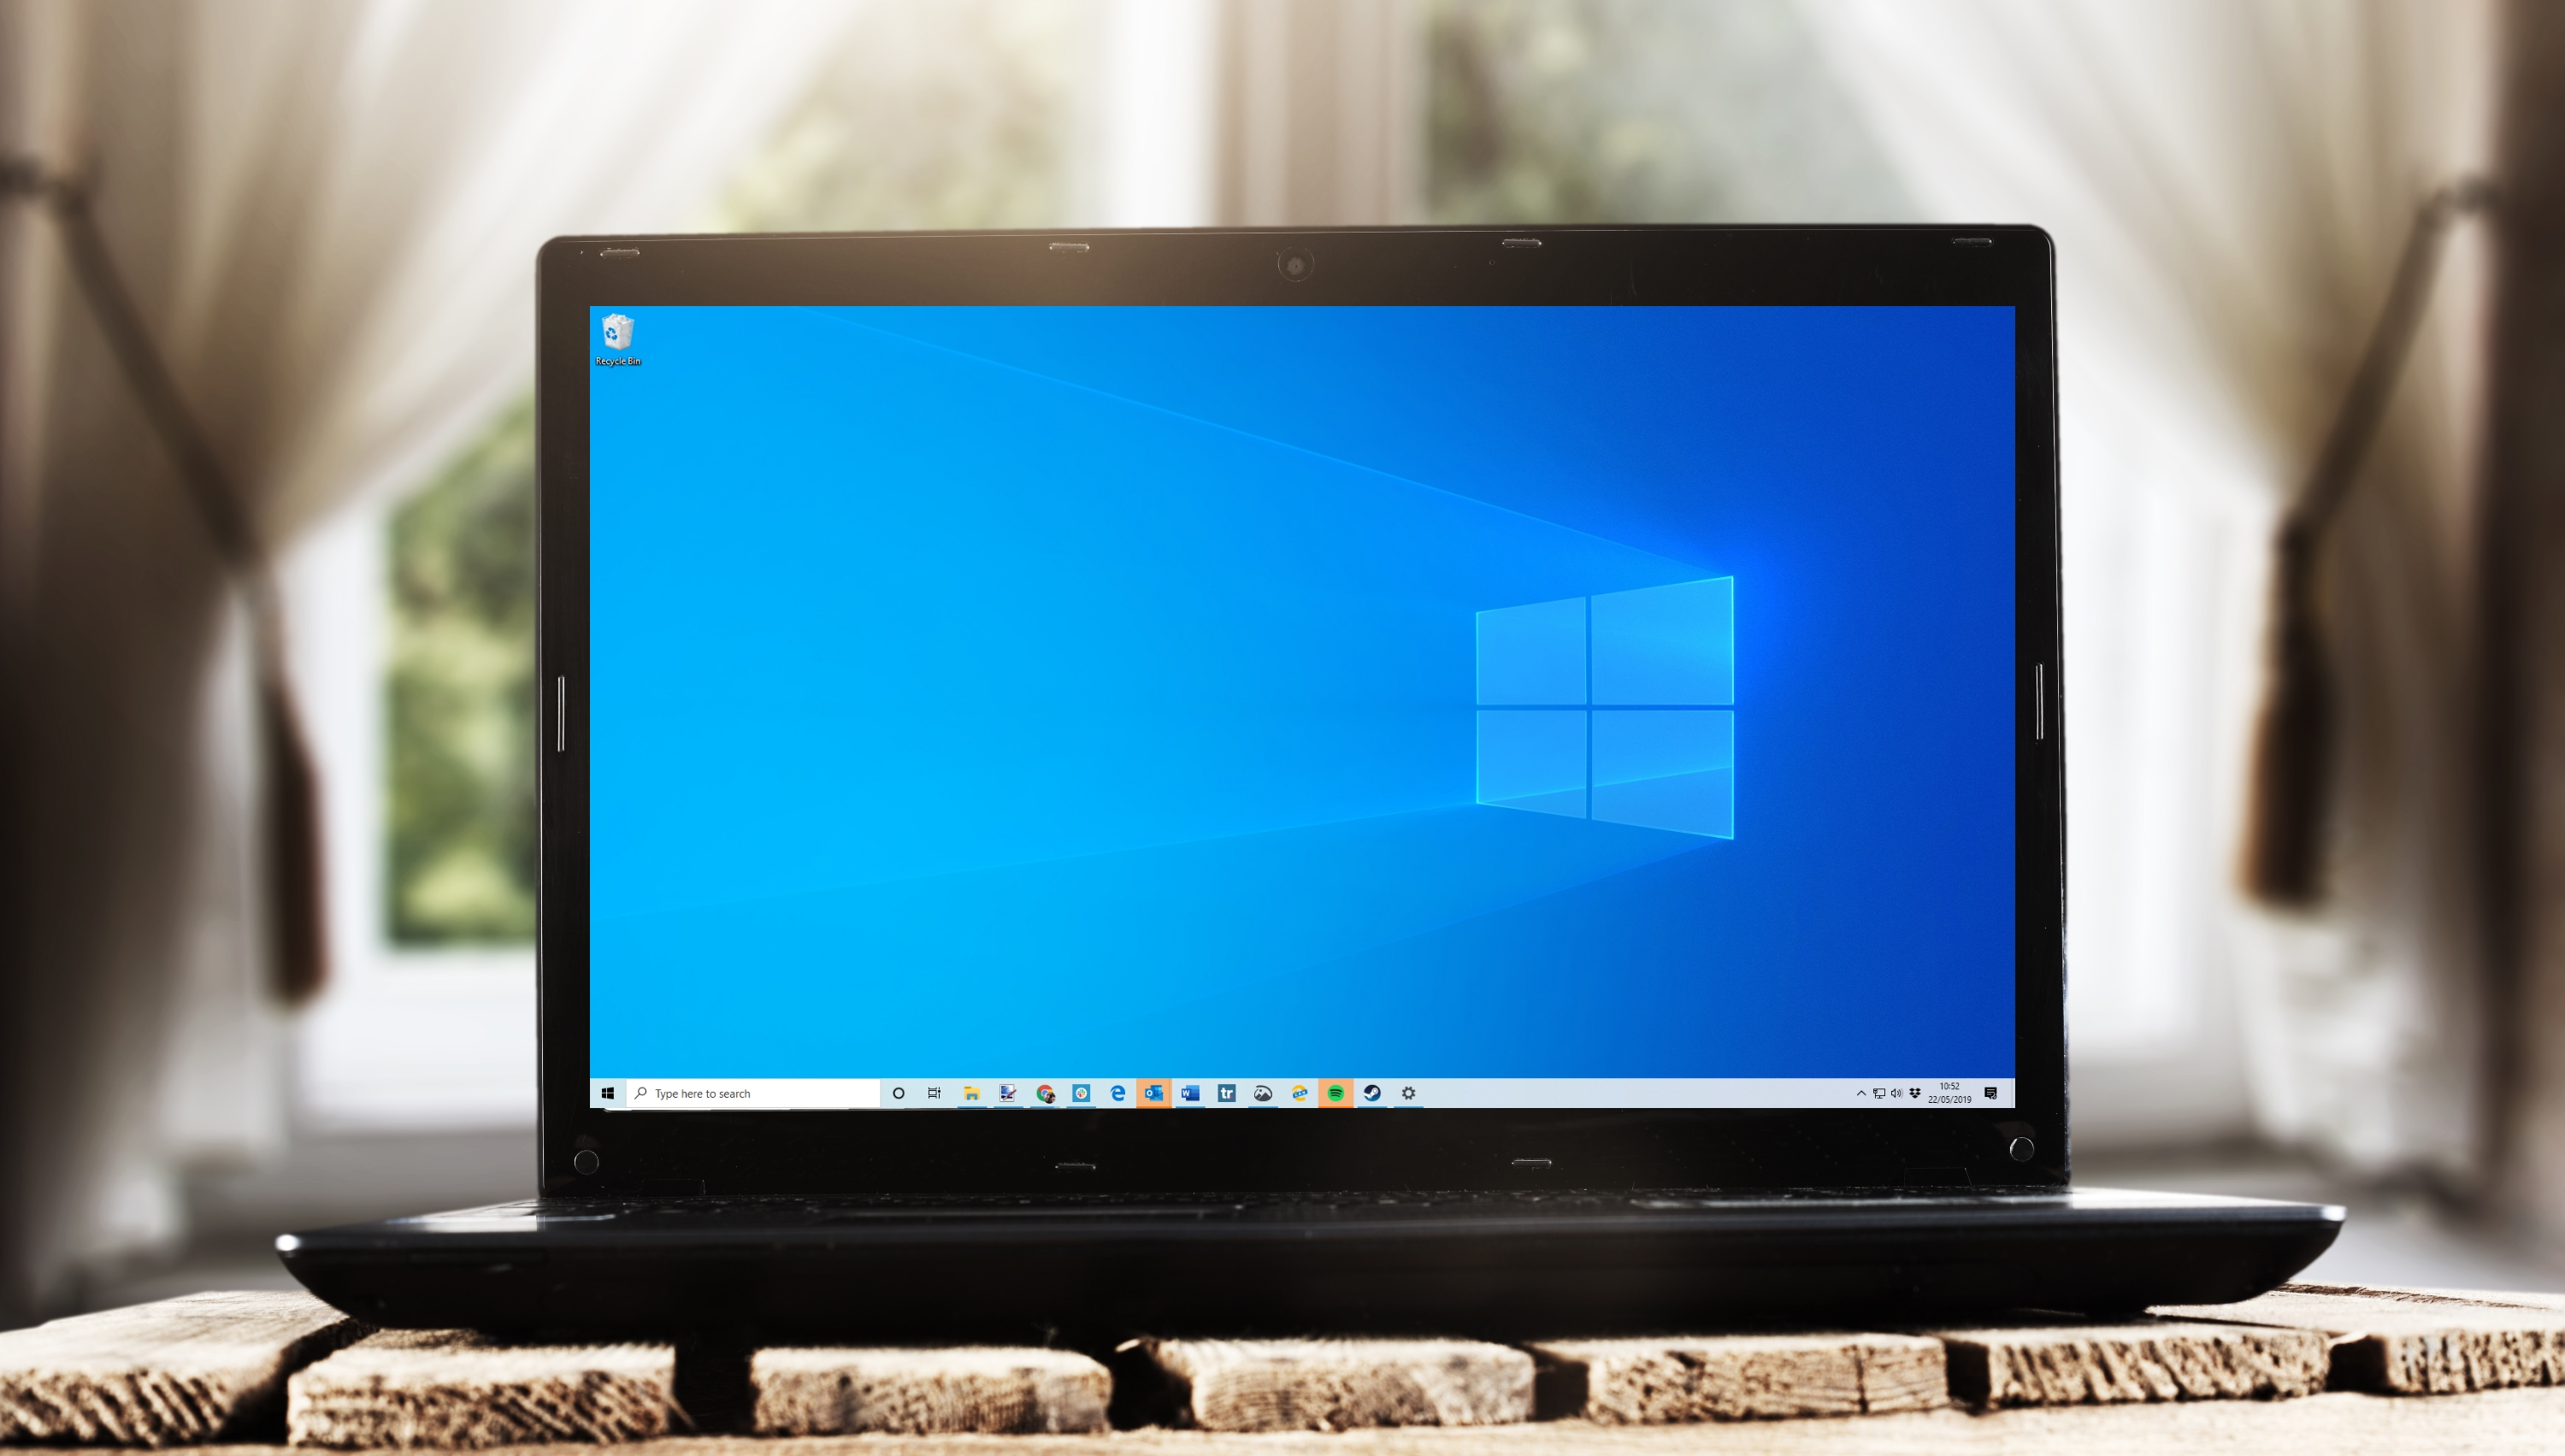 Windows 10 May 2019 Update release date, news and features